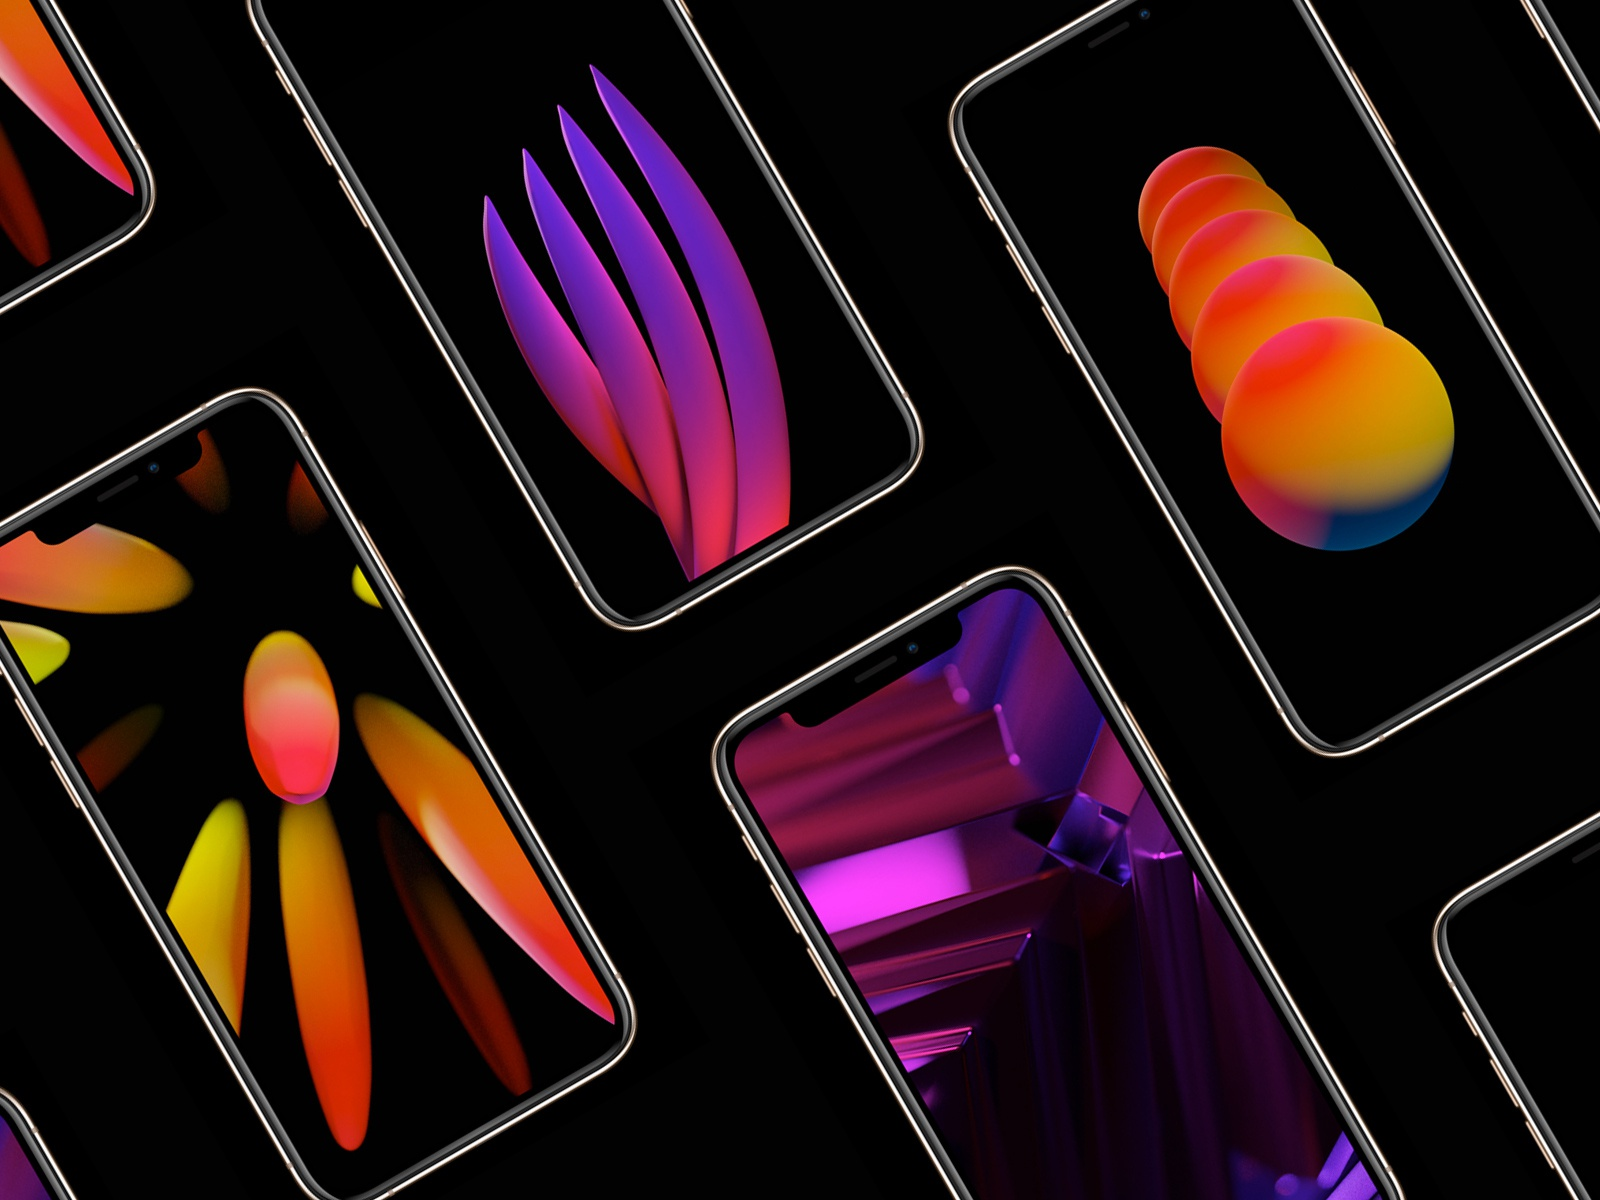 12 Eye Catching Mobile Wallpaper Freebies You Can Get On Dribbble Dribbble Design Blog